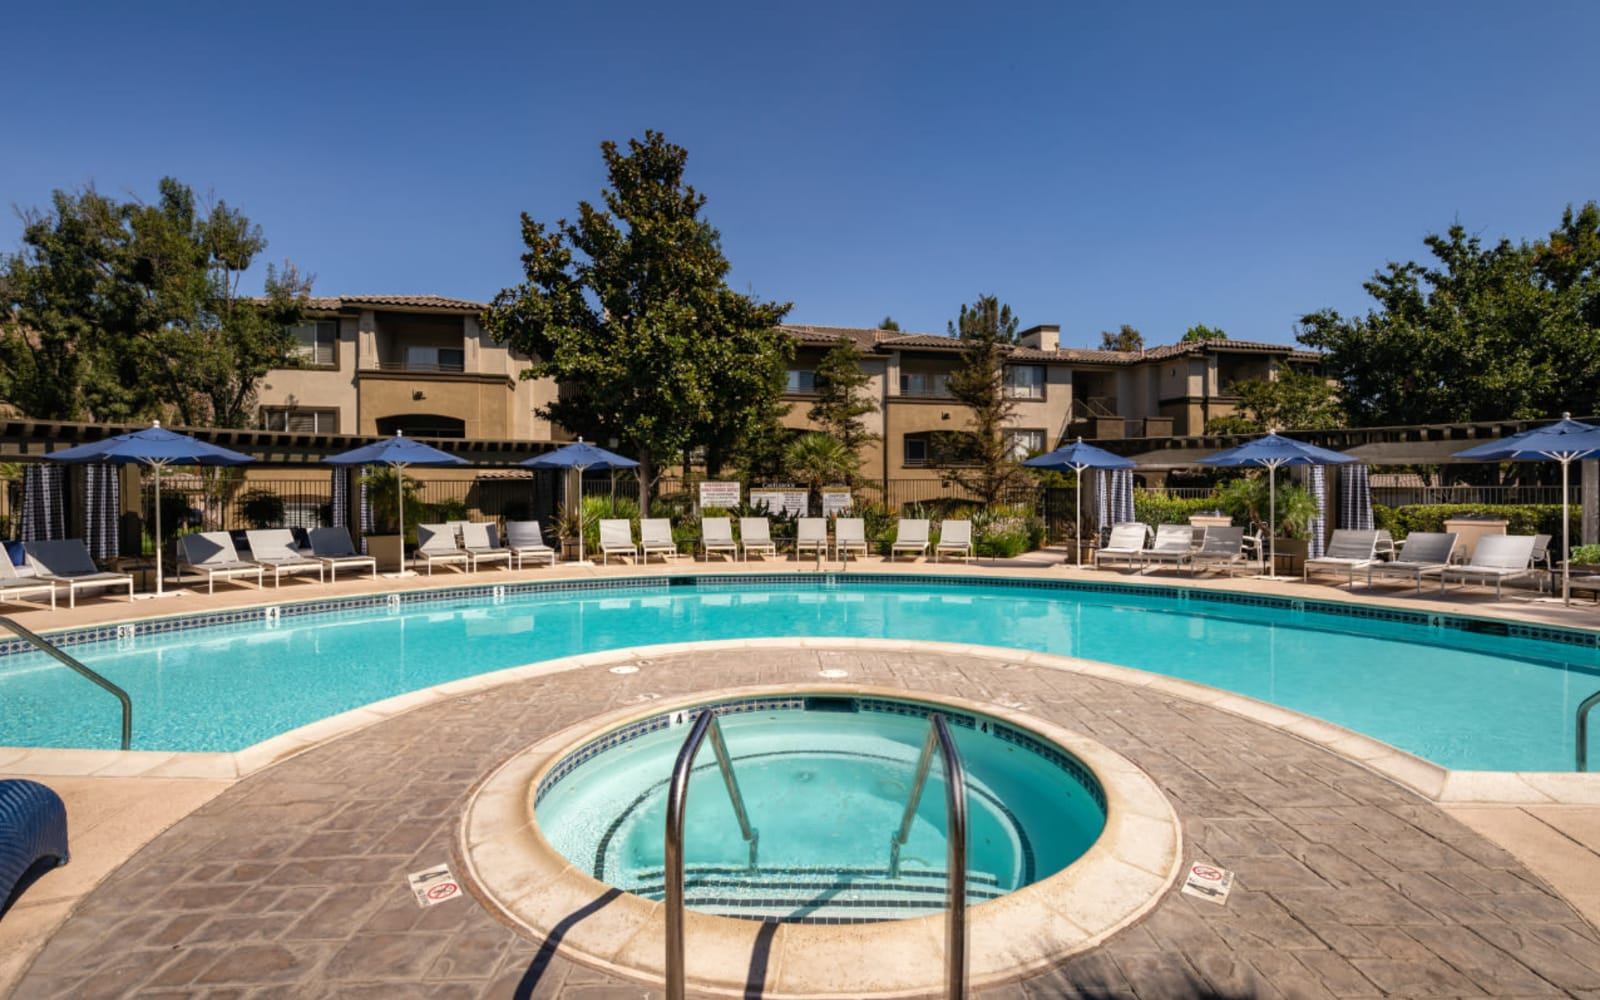 The community hot tub and pool at Castlerock at Sycamore Highlands in Riverside, California